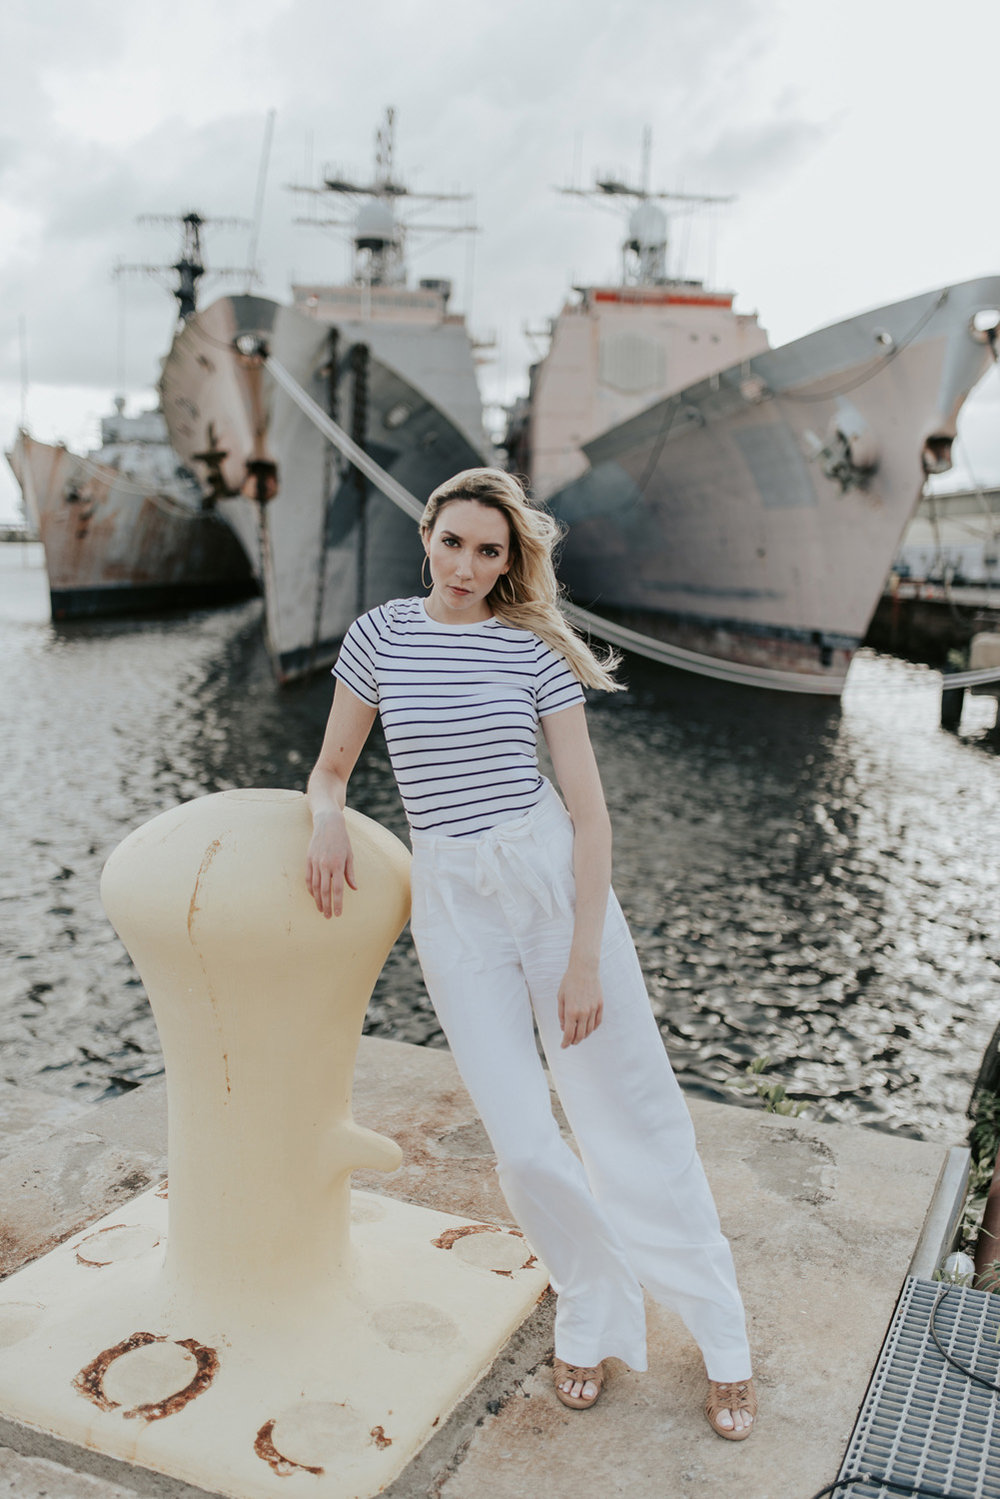 philadephia_navy_yard_portrait_photography_kylewillisphoto_naval_ships_uss_intrepid_south_army_blonde_kyle_willis_photography